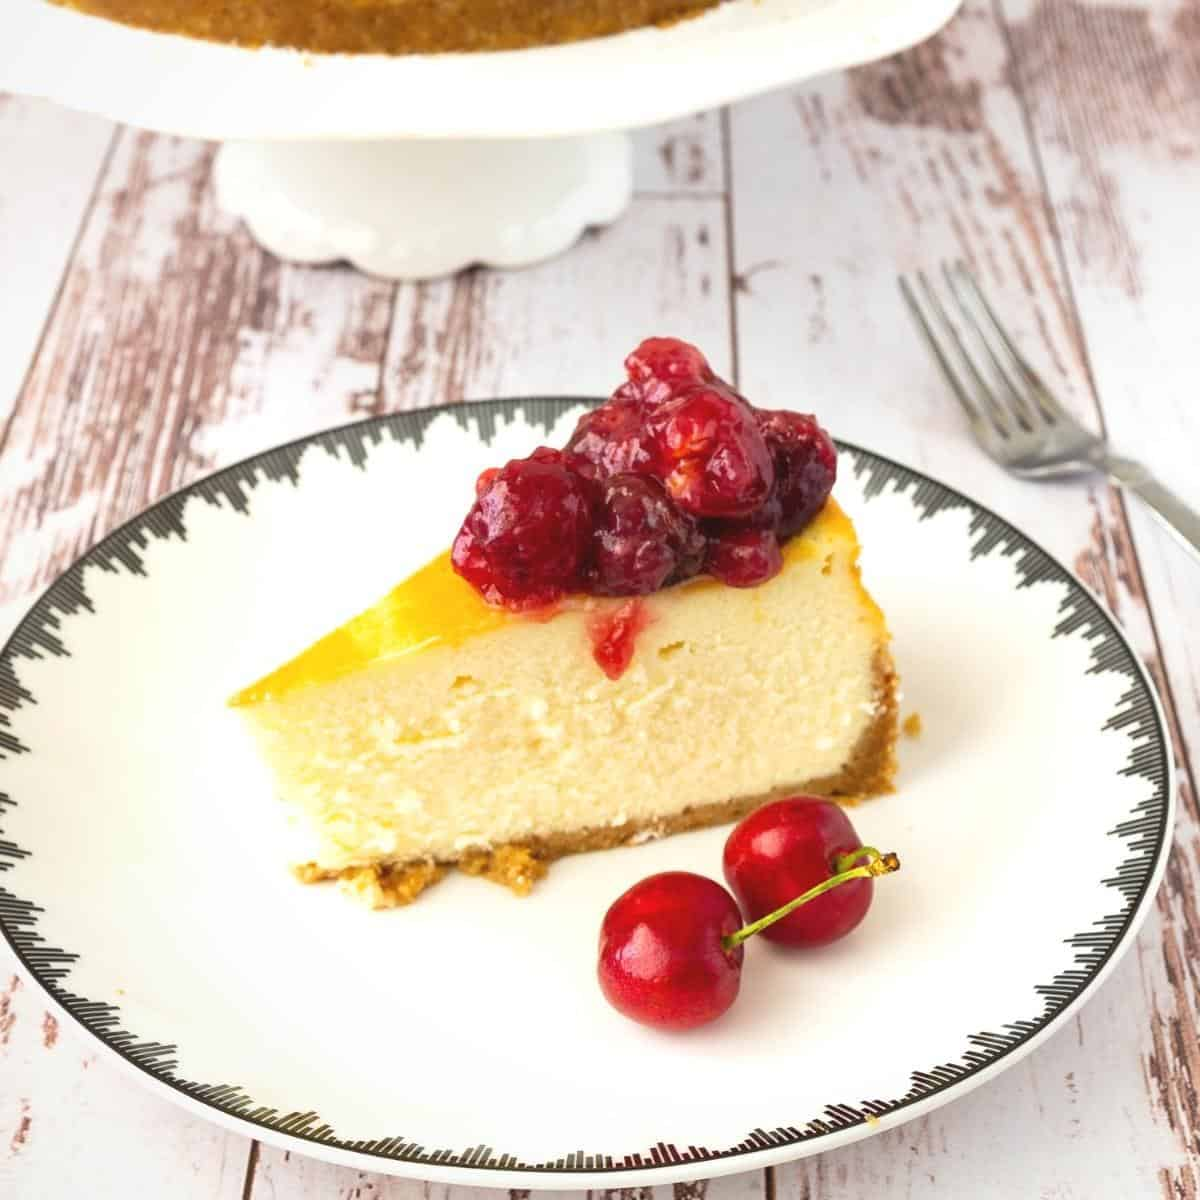 A slice of cheesecake with cherry topping.